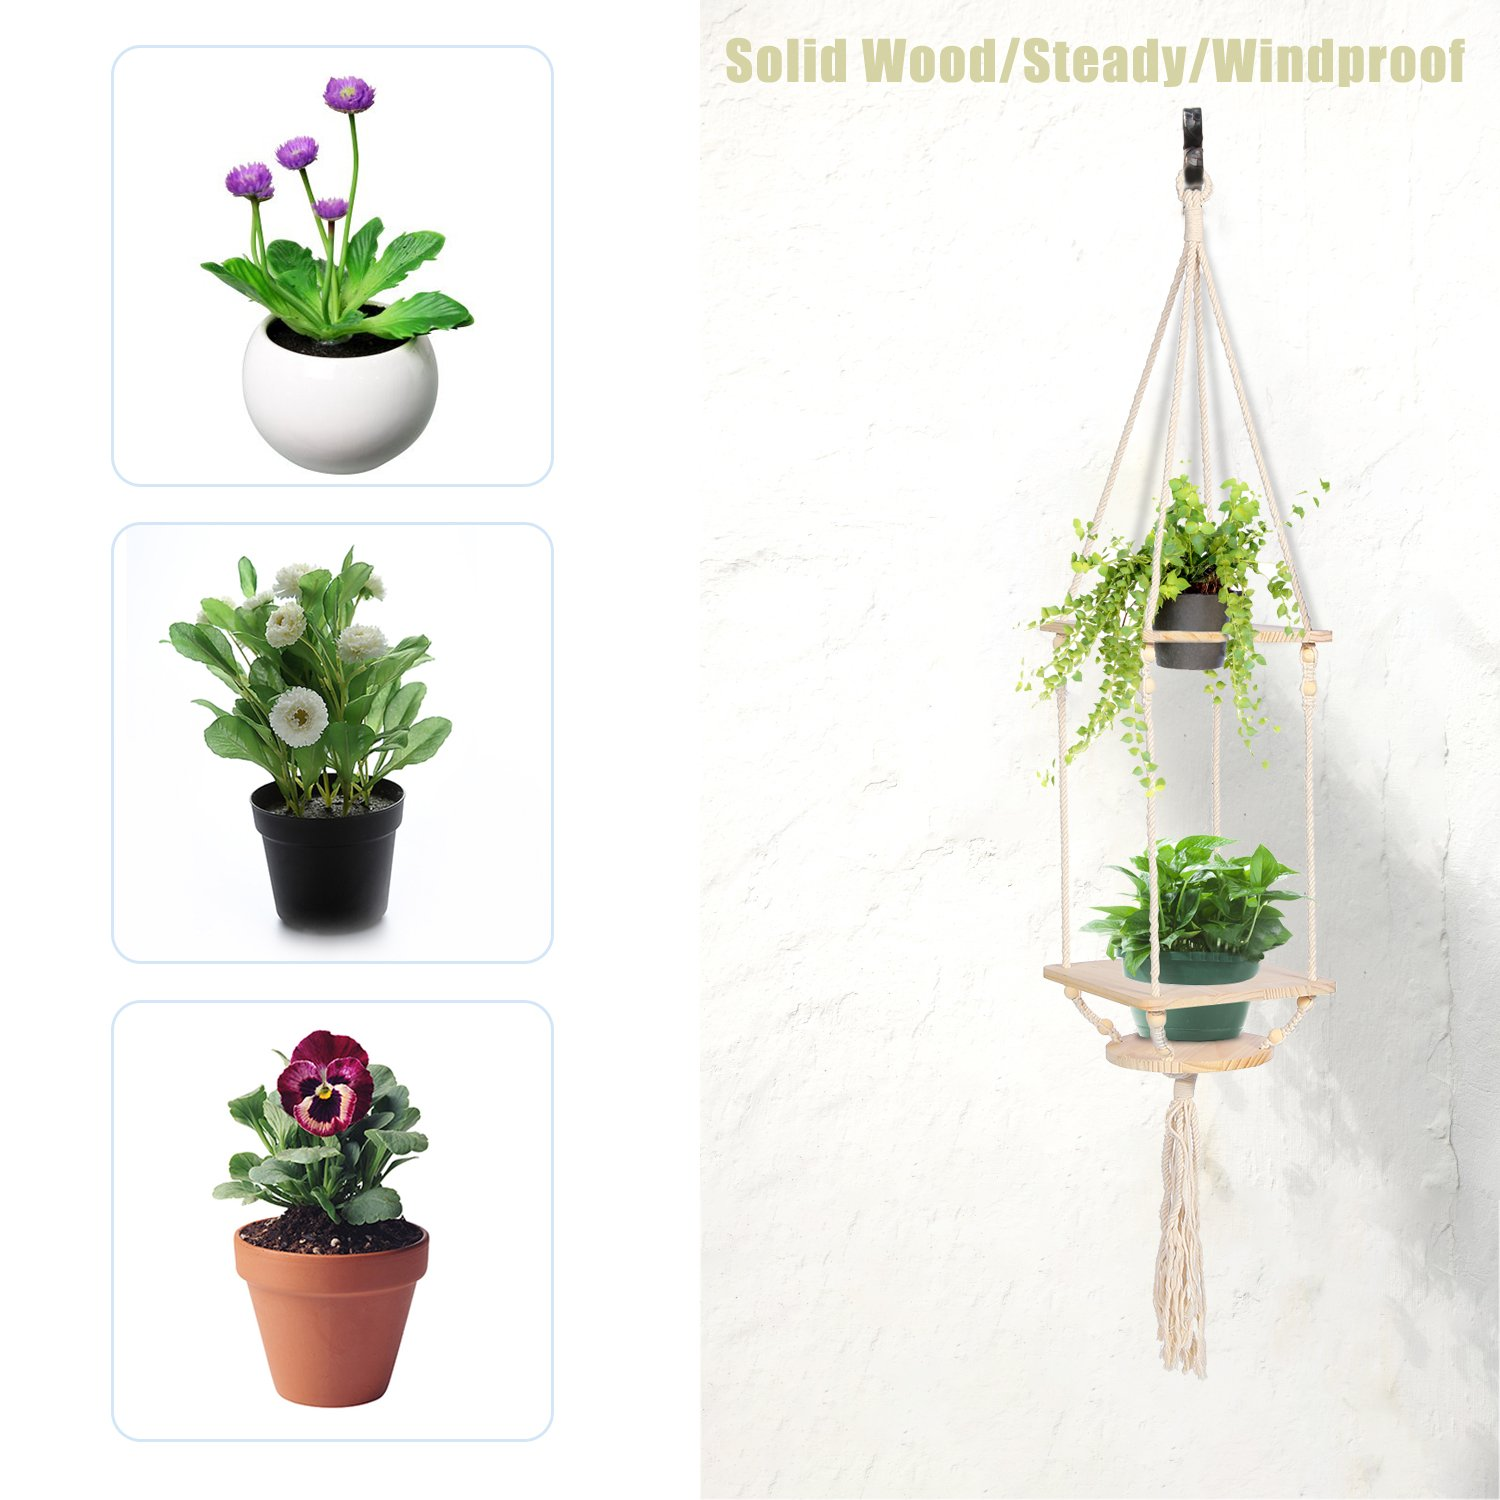 Gardening Cotton Cord Herbs 2 Tier Plant Holder Wooden Hanging Planter Stand Pine Shelf With Decorative Beads Bohemian Home Decor Flower Pot Holder For Succulent Cacti Plants Sonyabecca Macrame Hanging Planter Patio